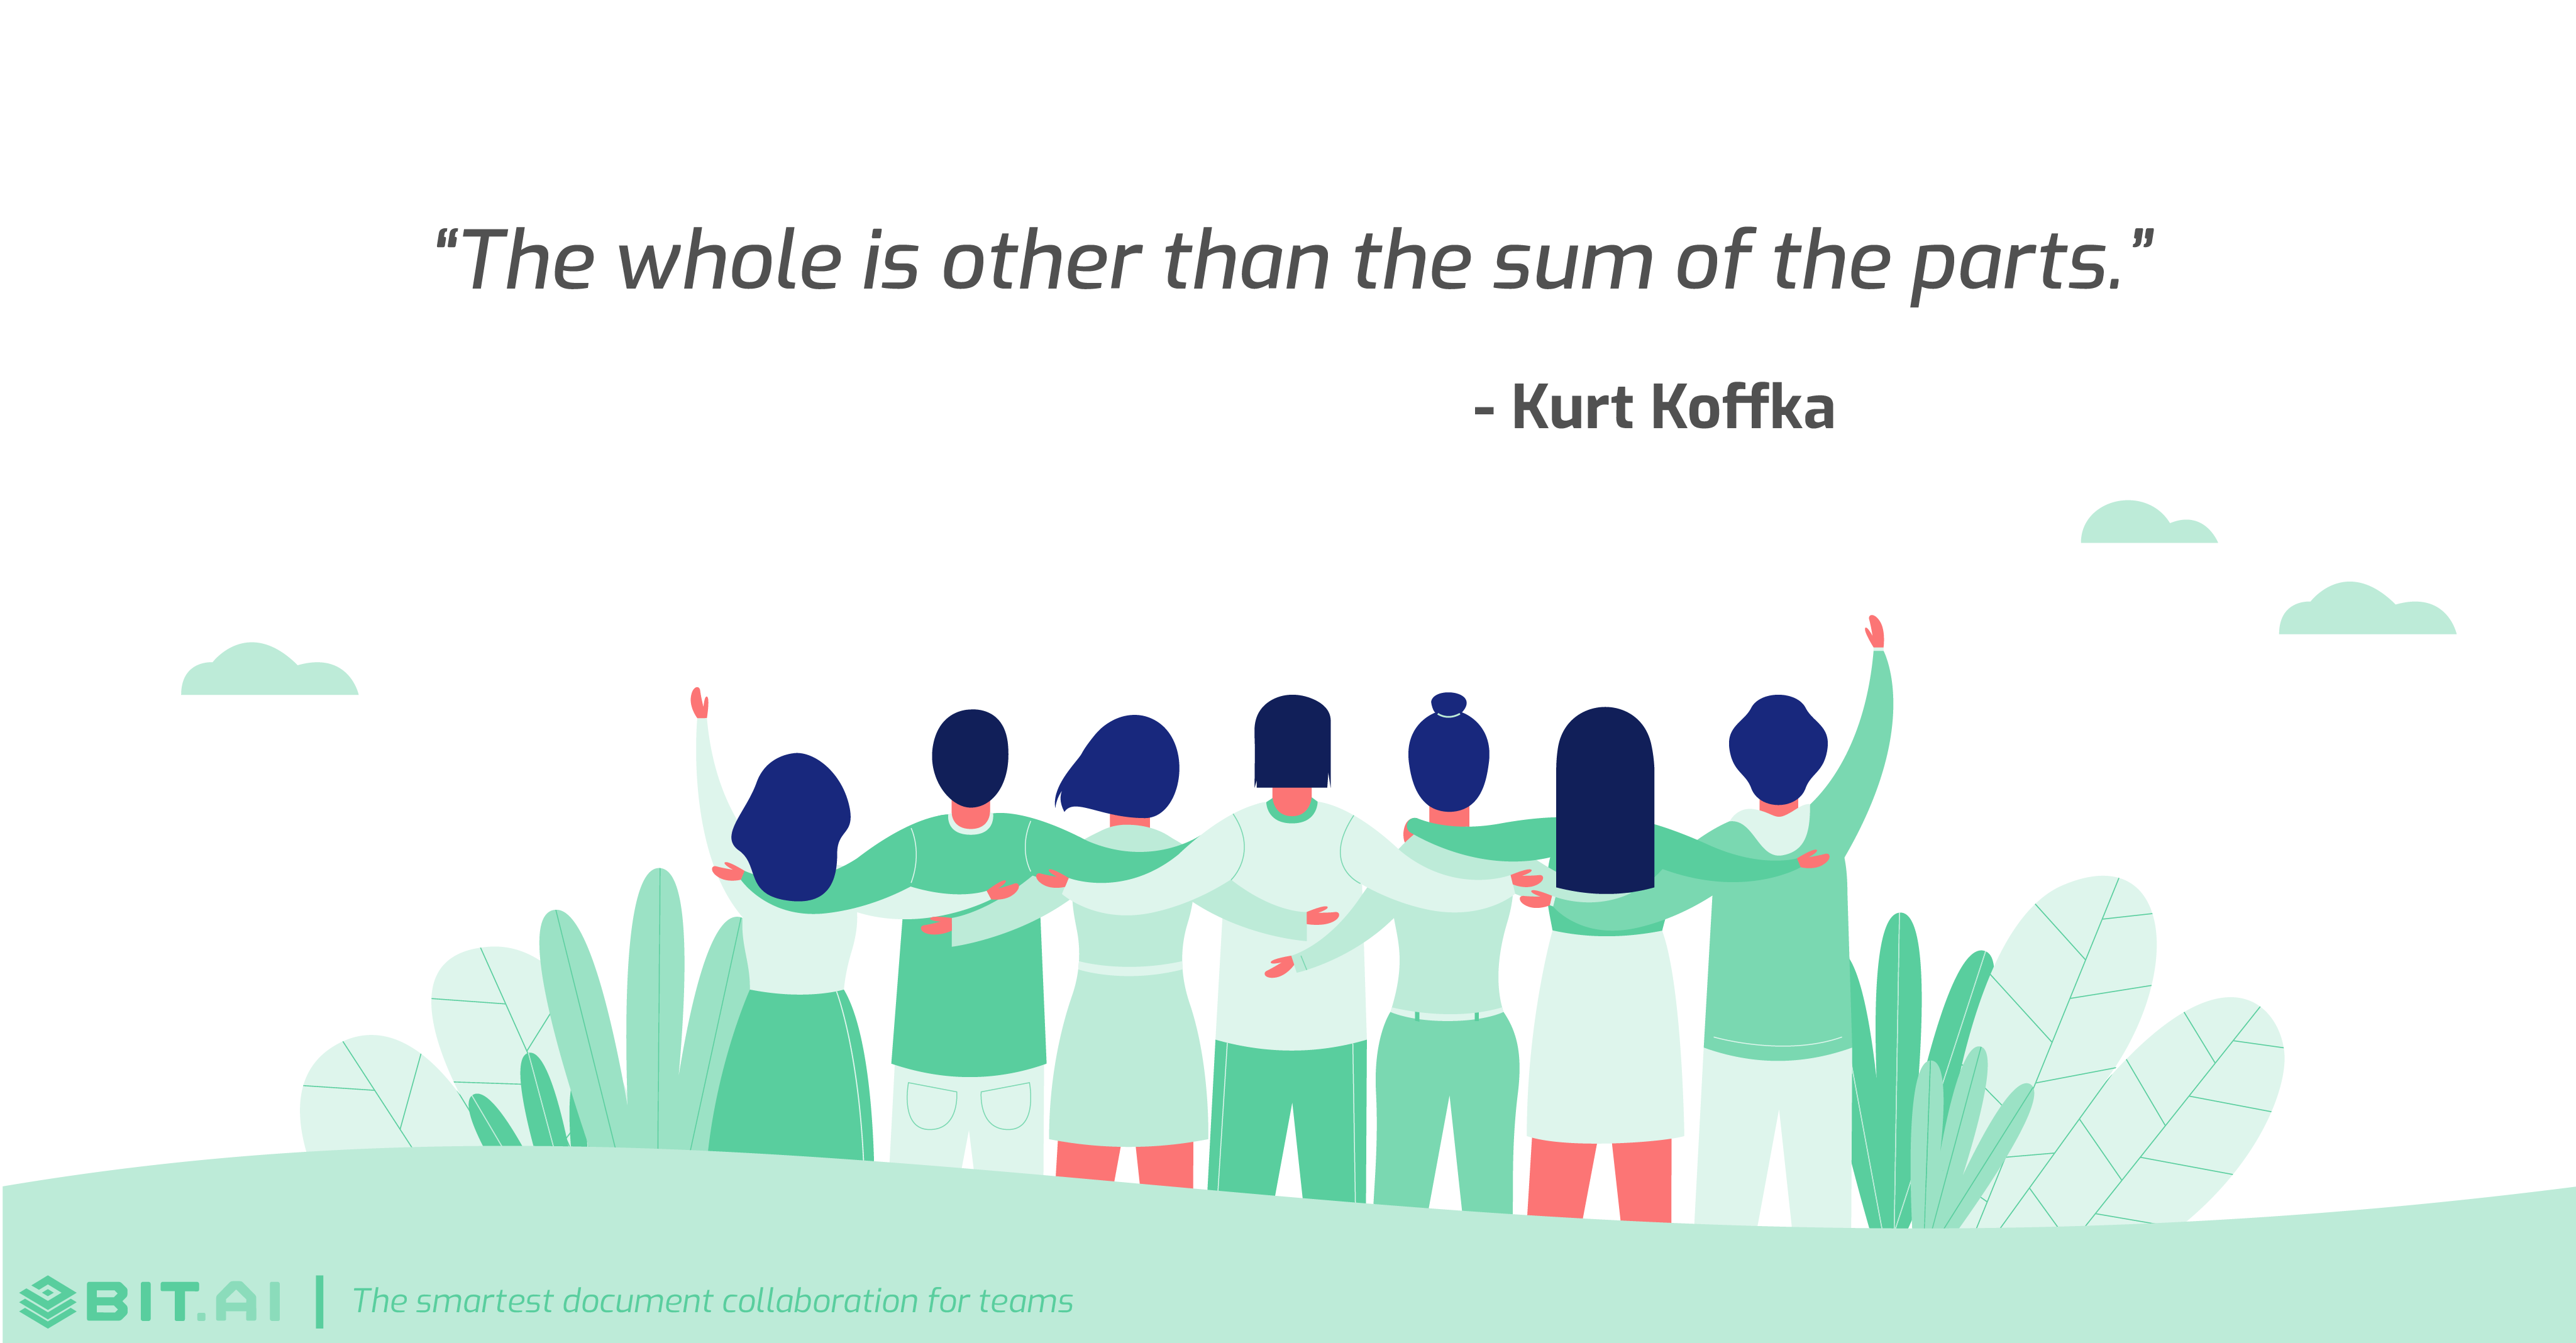 Teamwork collaboration quote: The whole is other than the sum of the parts – Kurt Koffka